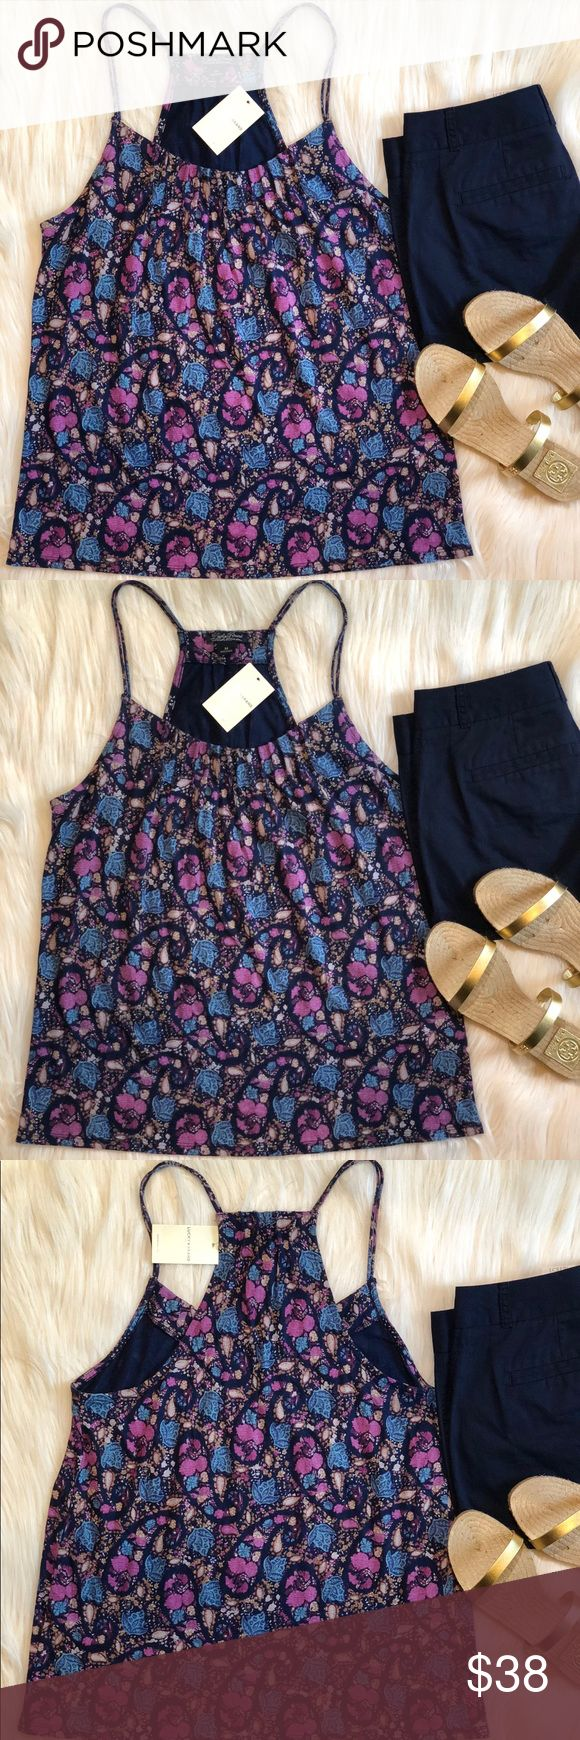 """🍀 LUCKY BRAND FLORAL STRAPPY TANK TOP SIZE: M NWT NEW WITH TAG!   🍀LUCKY BRAND TANK TOP SIZE: MEDIUM   DETAILS:  - SCOOP NECKLINE - FLORAL PRINT  - NAVY-FLORAL MULTI COLOR  BUST: 18""""  MEASUREMENT IS LAYING FLAT & APPROX.  Sandals & shorts are not included. Lucky Brand Tops Tank Tops"""